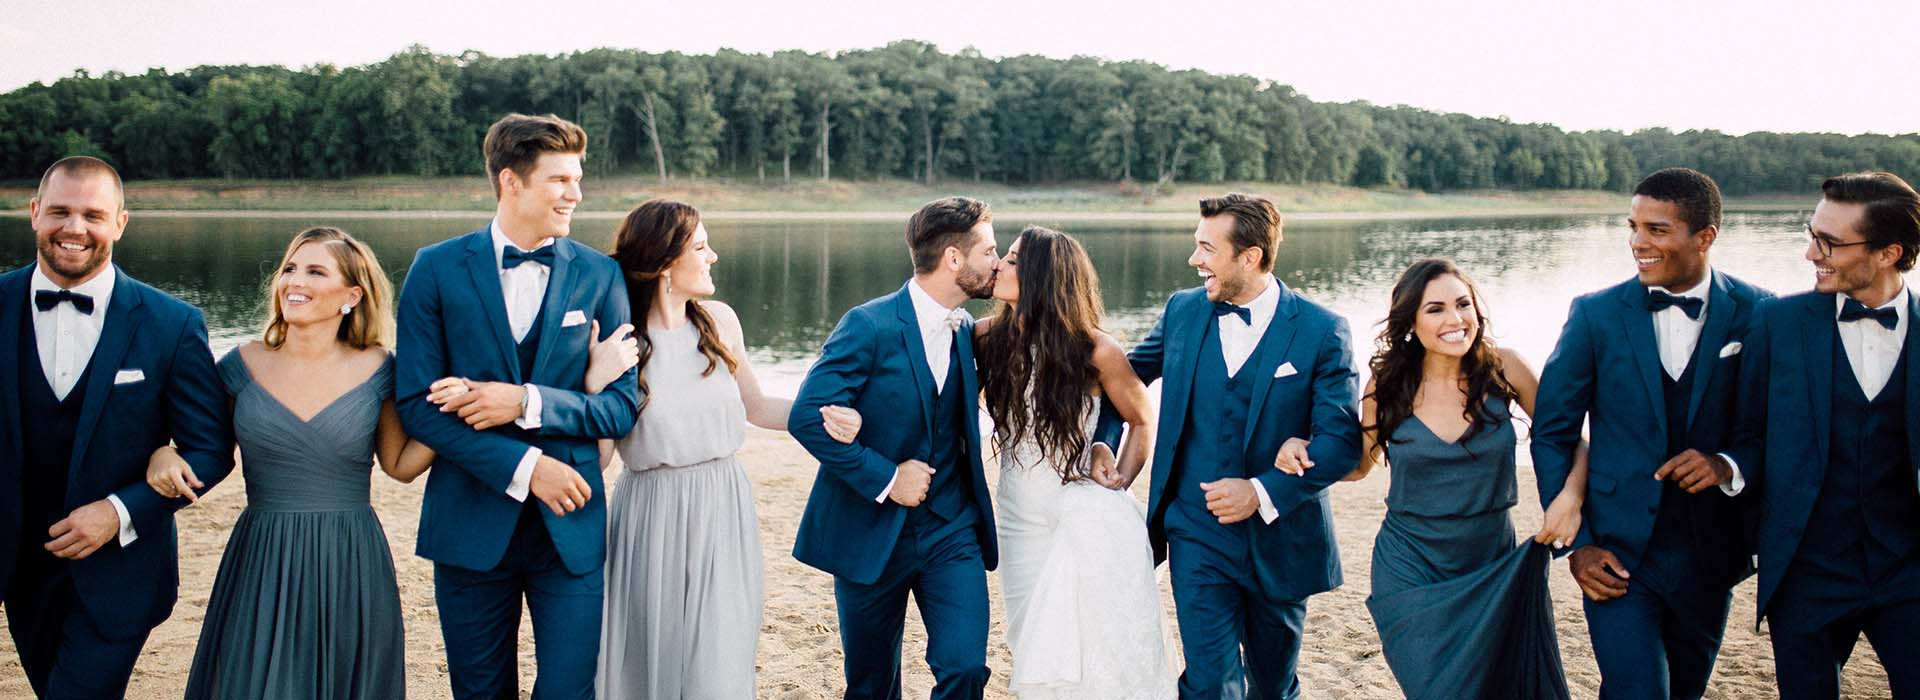 Wedding Party in Blue Tuxedos